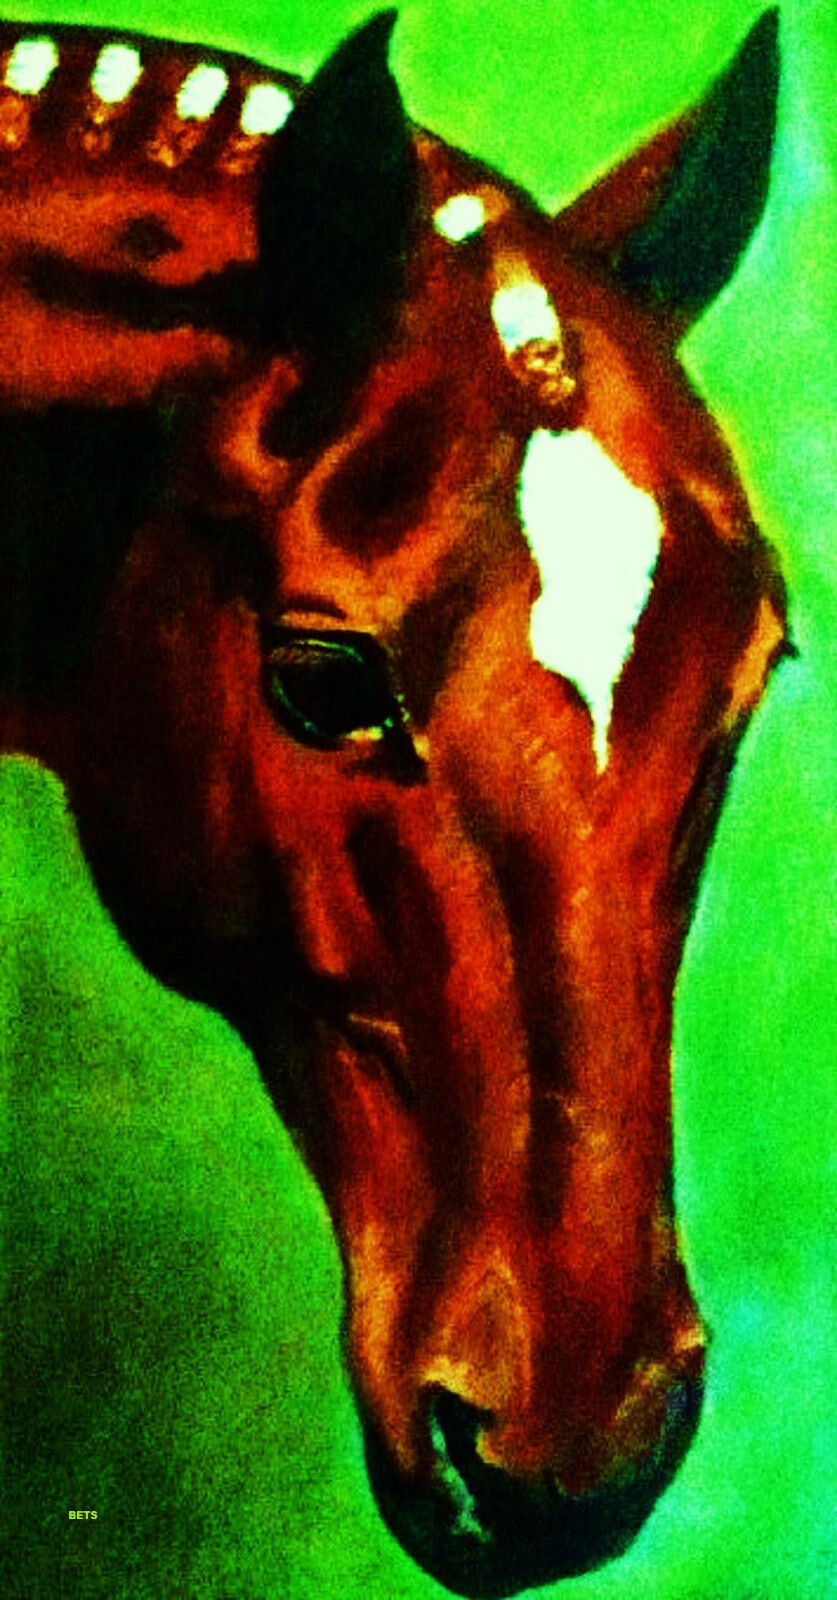 HORSE PRINT Giclee THgoldUGHBRED Art RED artist BETS 7 COLORS print size 12 X21